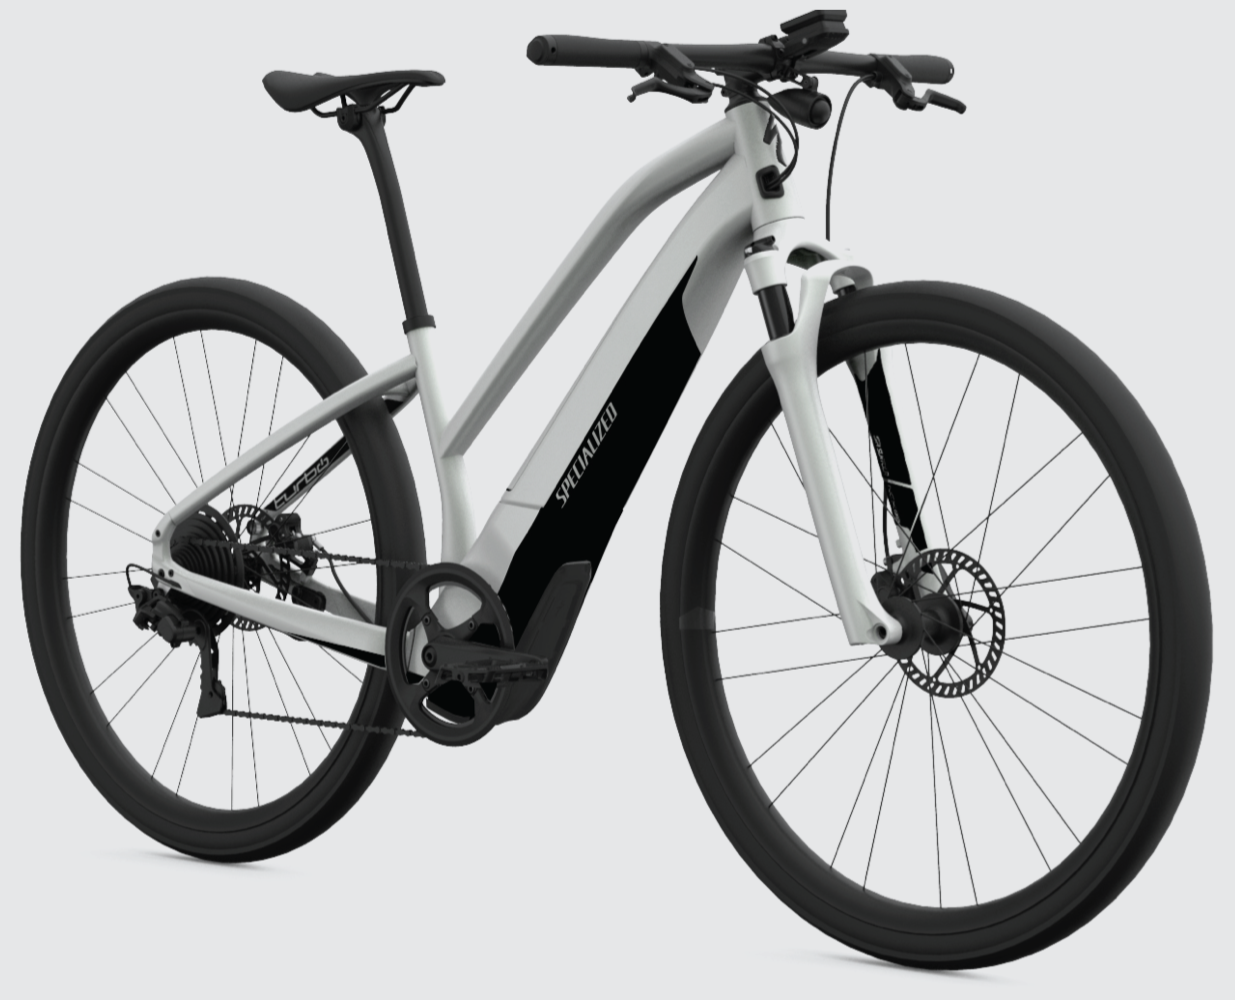 Specialized Vado 2.0 — ElectriCityBikes